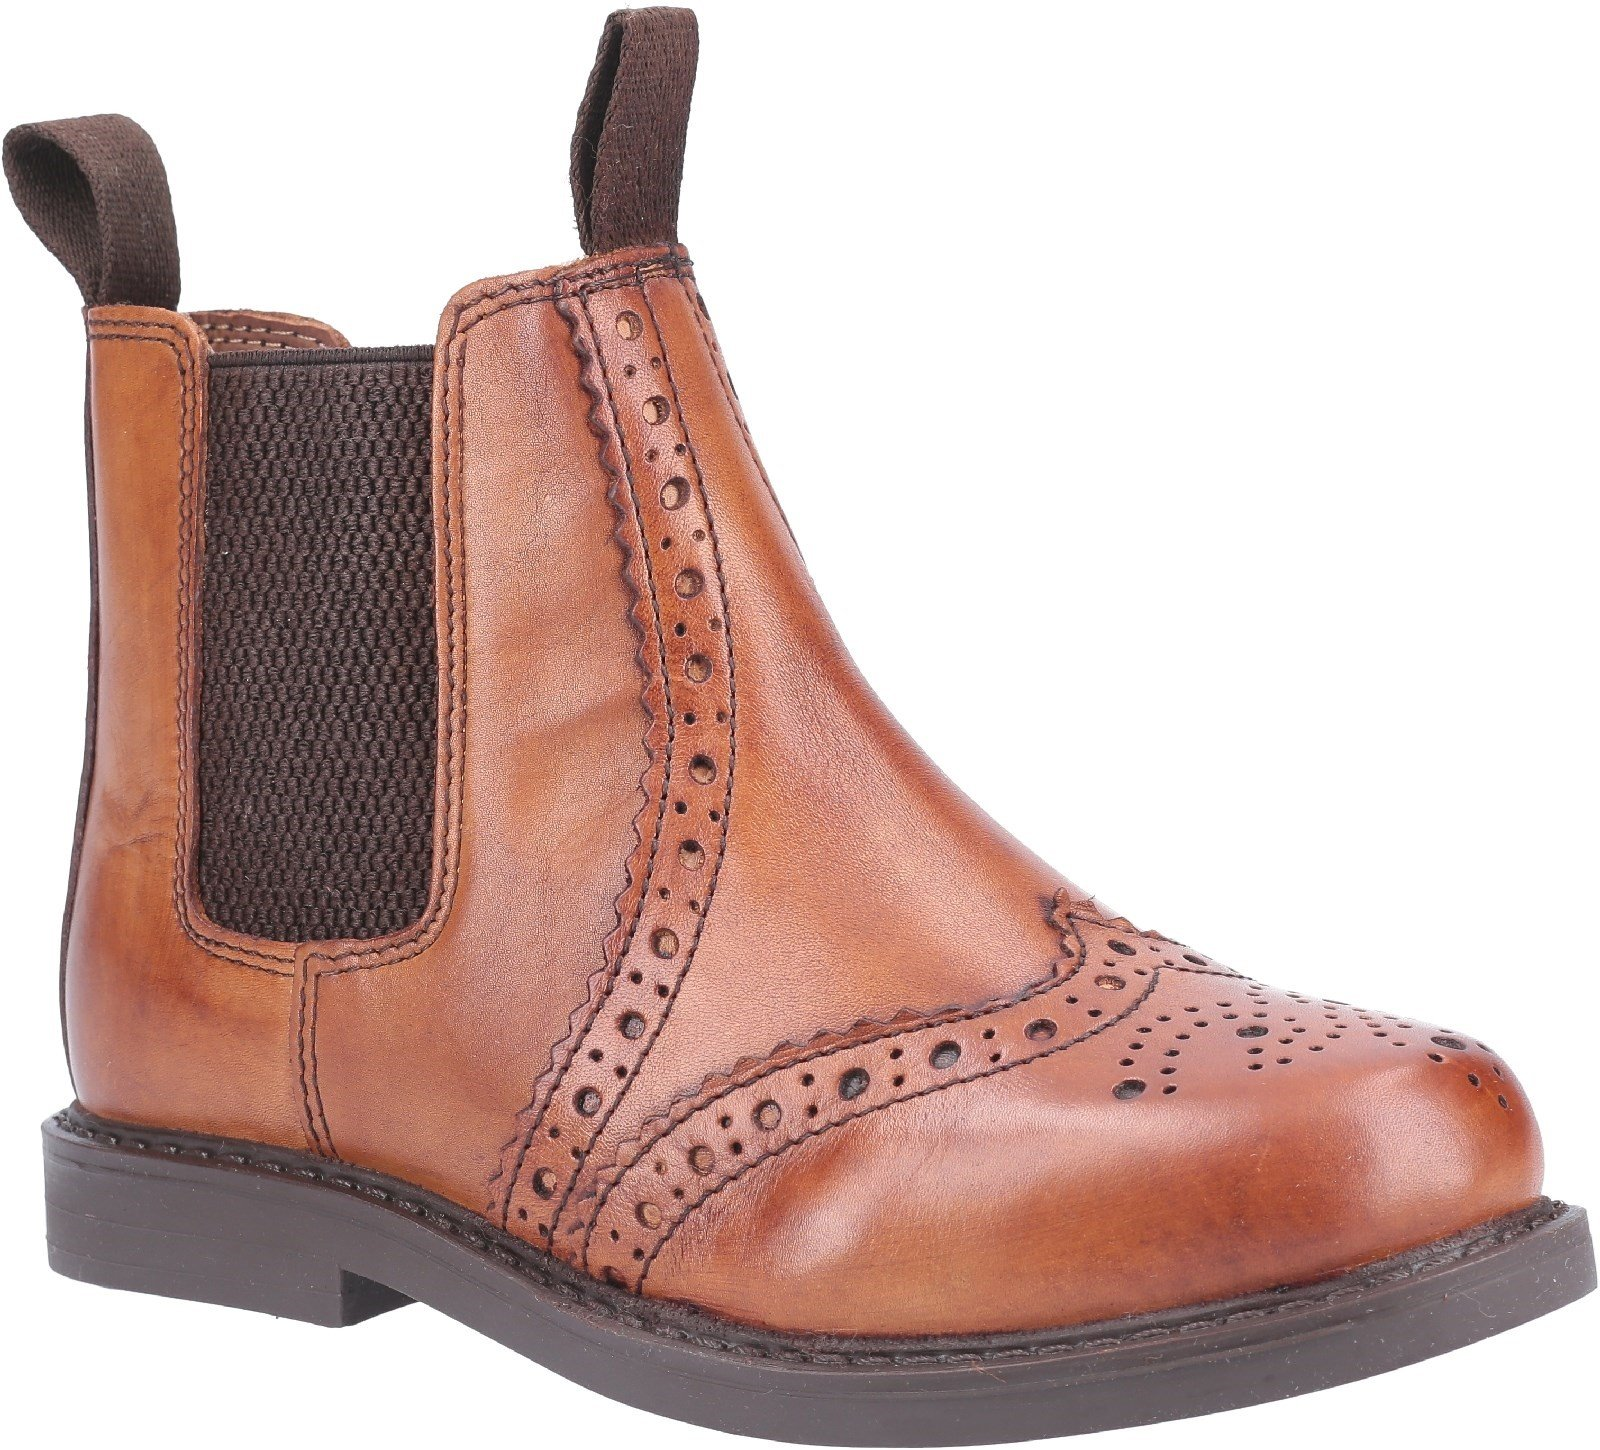 Cotswold Unisex Nympsfield Brogue Pull On Boots Multicolor 29270 - Tan 10